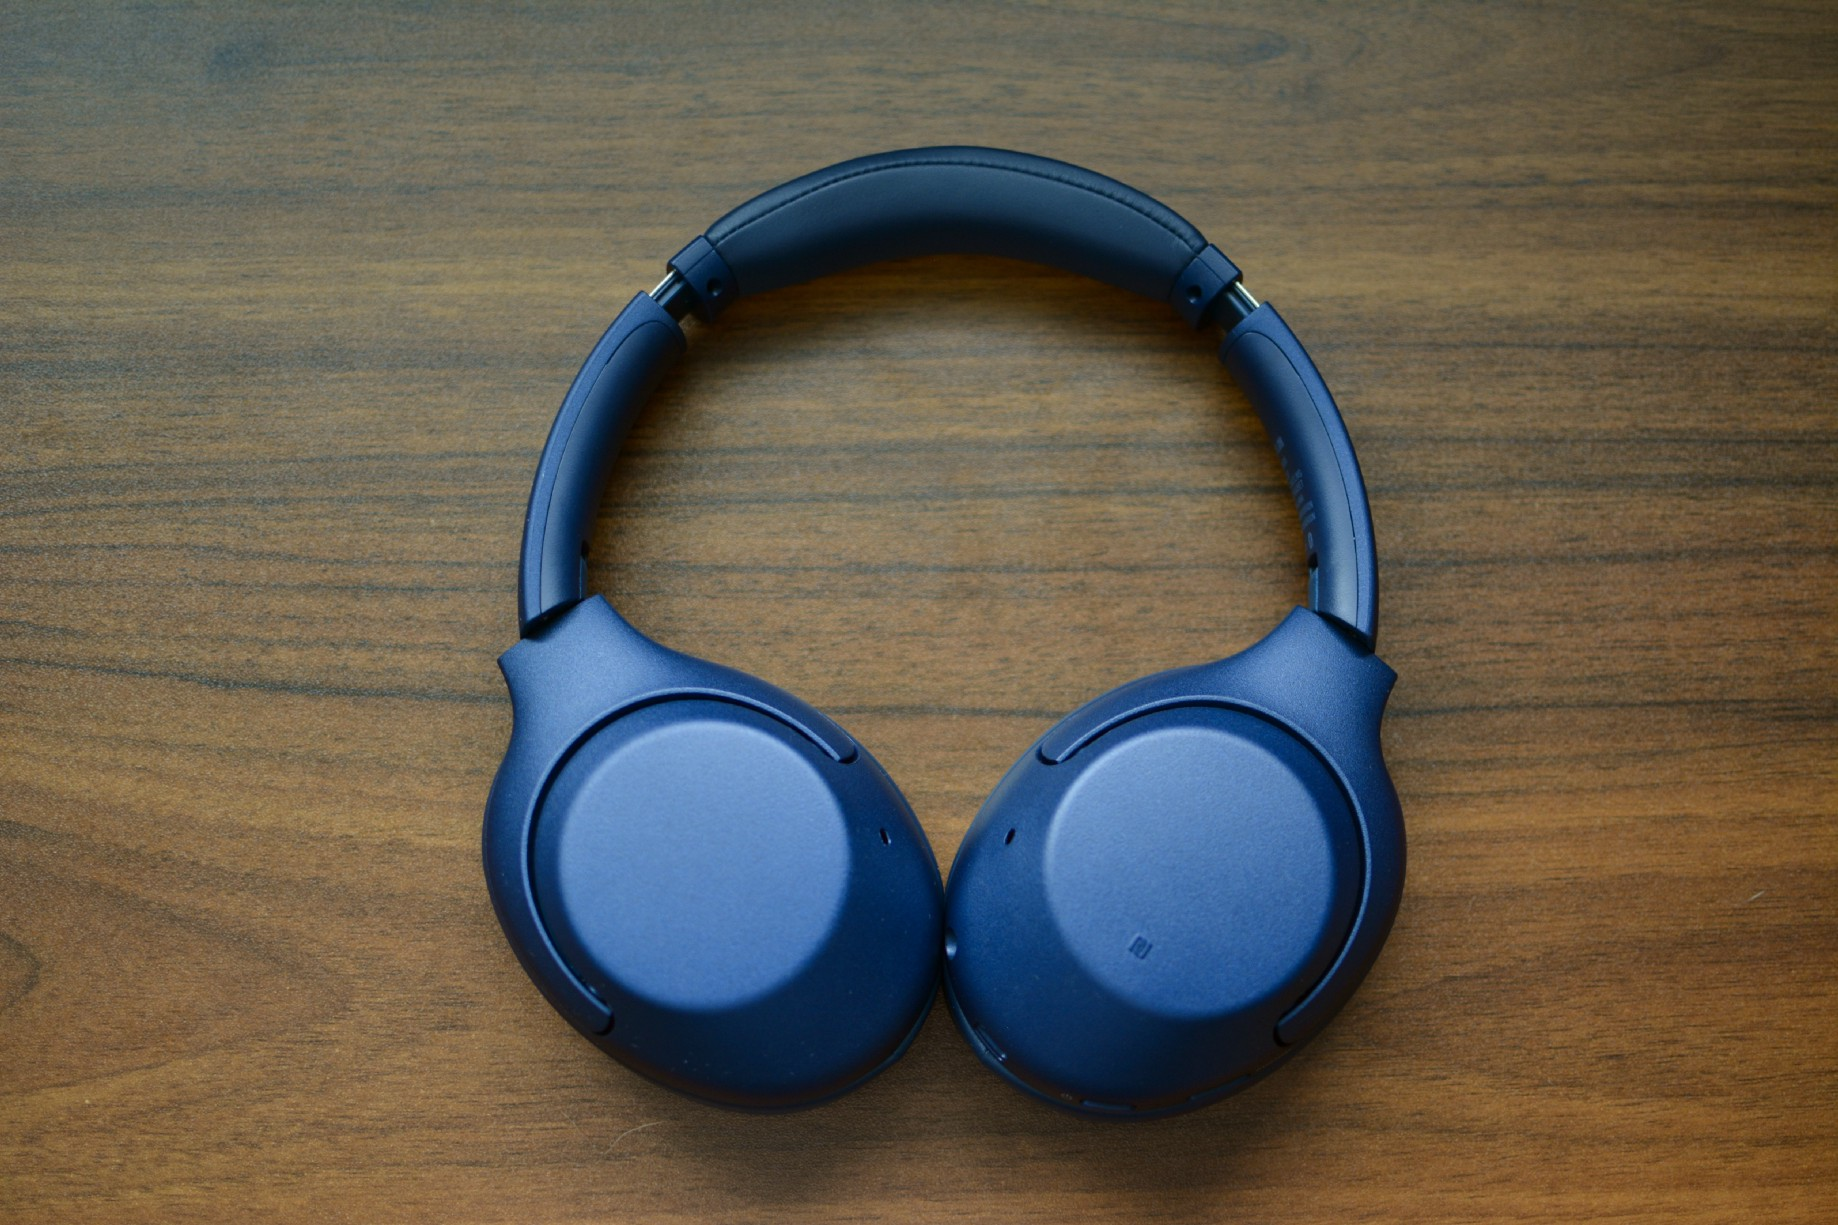 best noise cancelling headphones for yard work